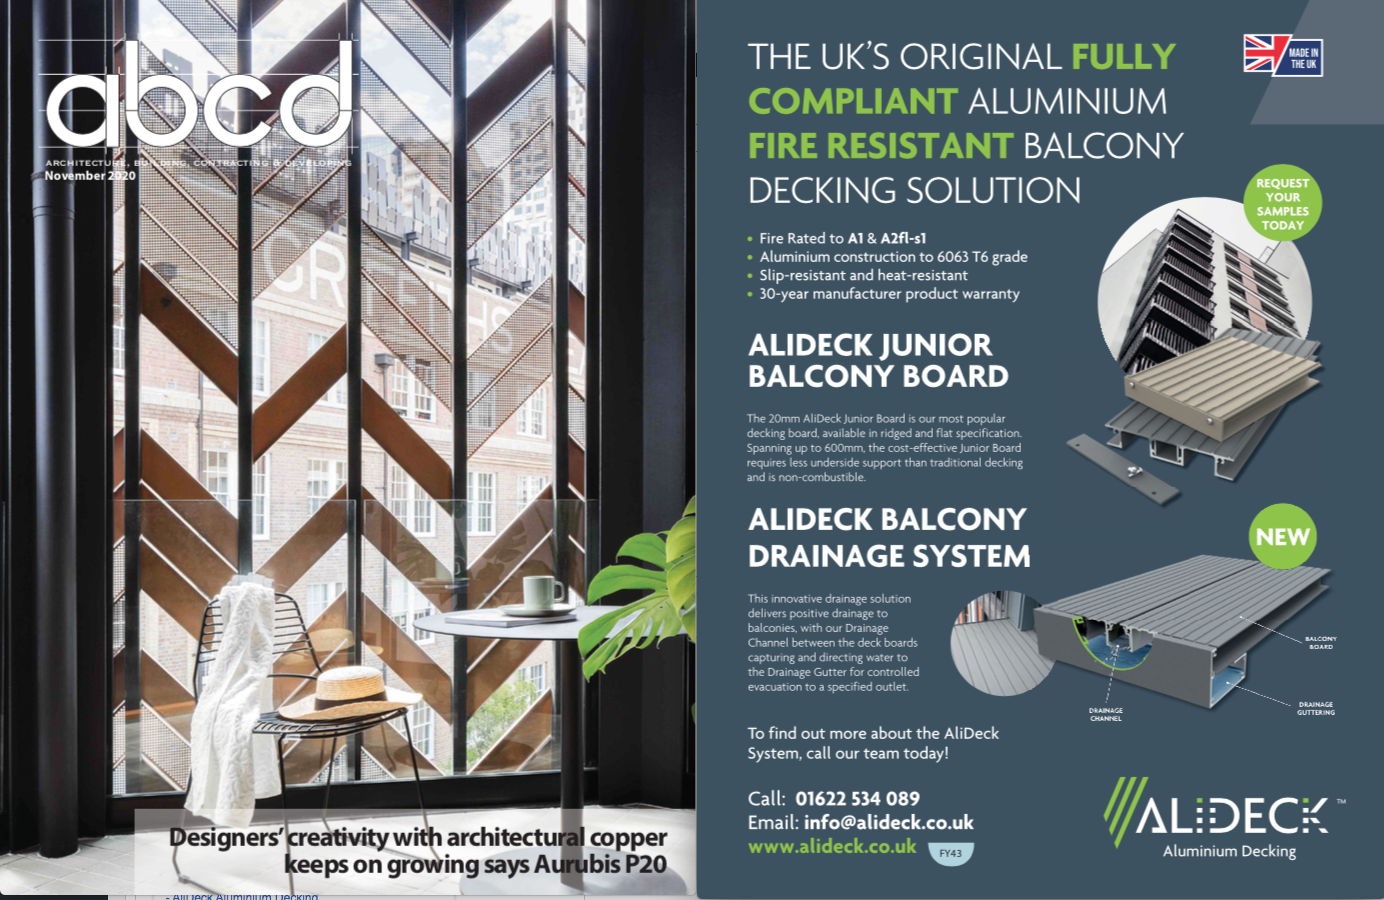 AliDeck Featured In ABC&D's Novmber issue Magazine1